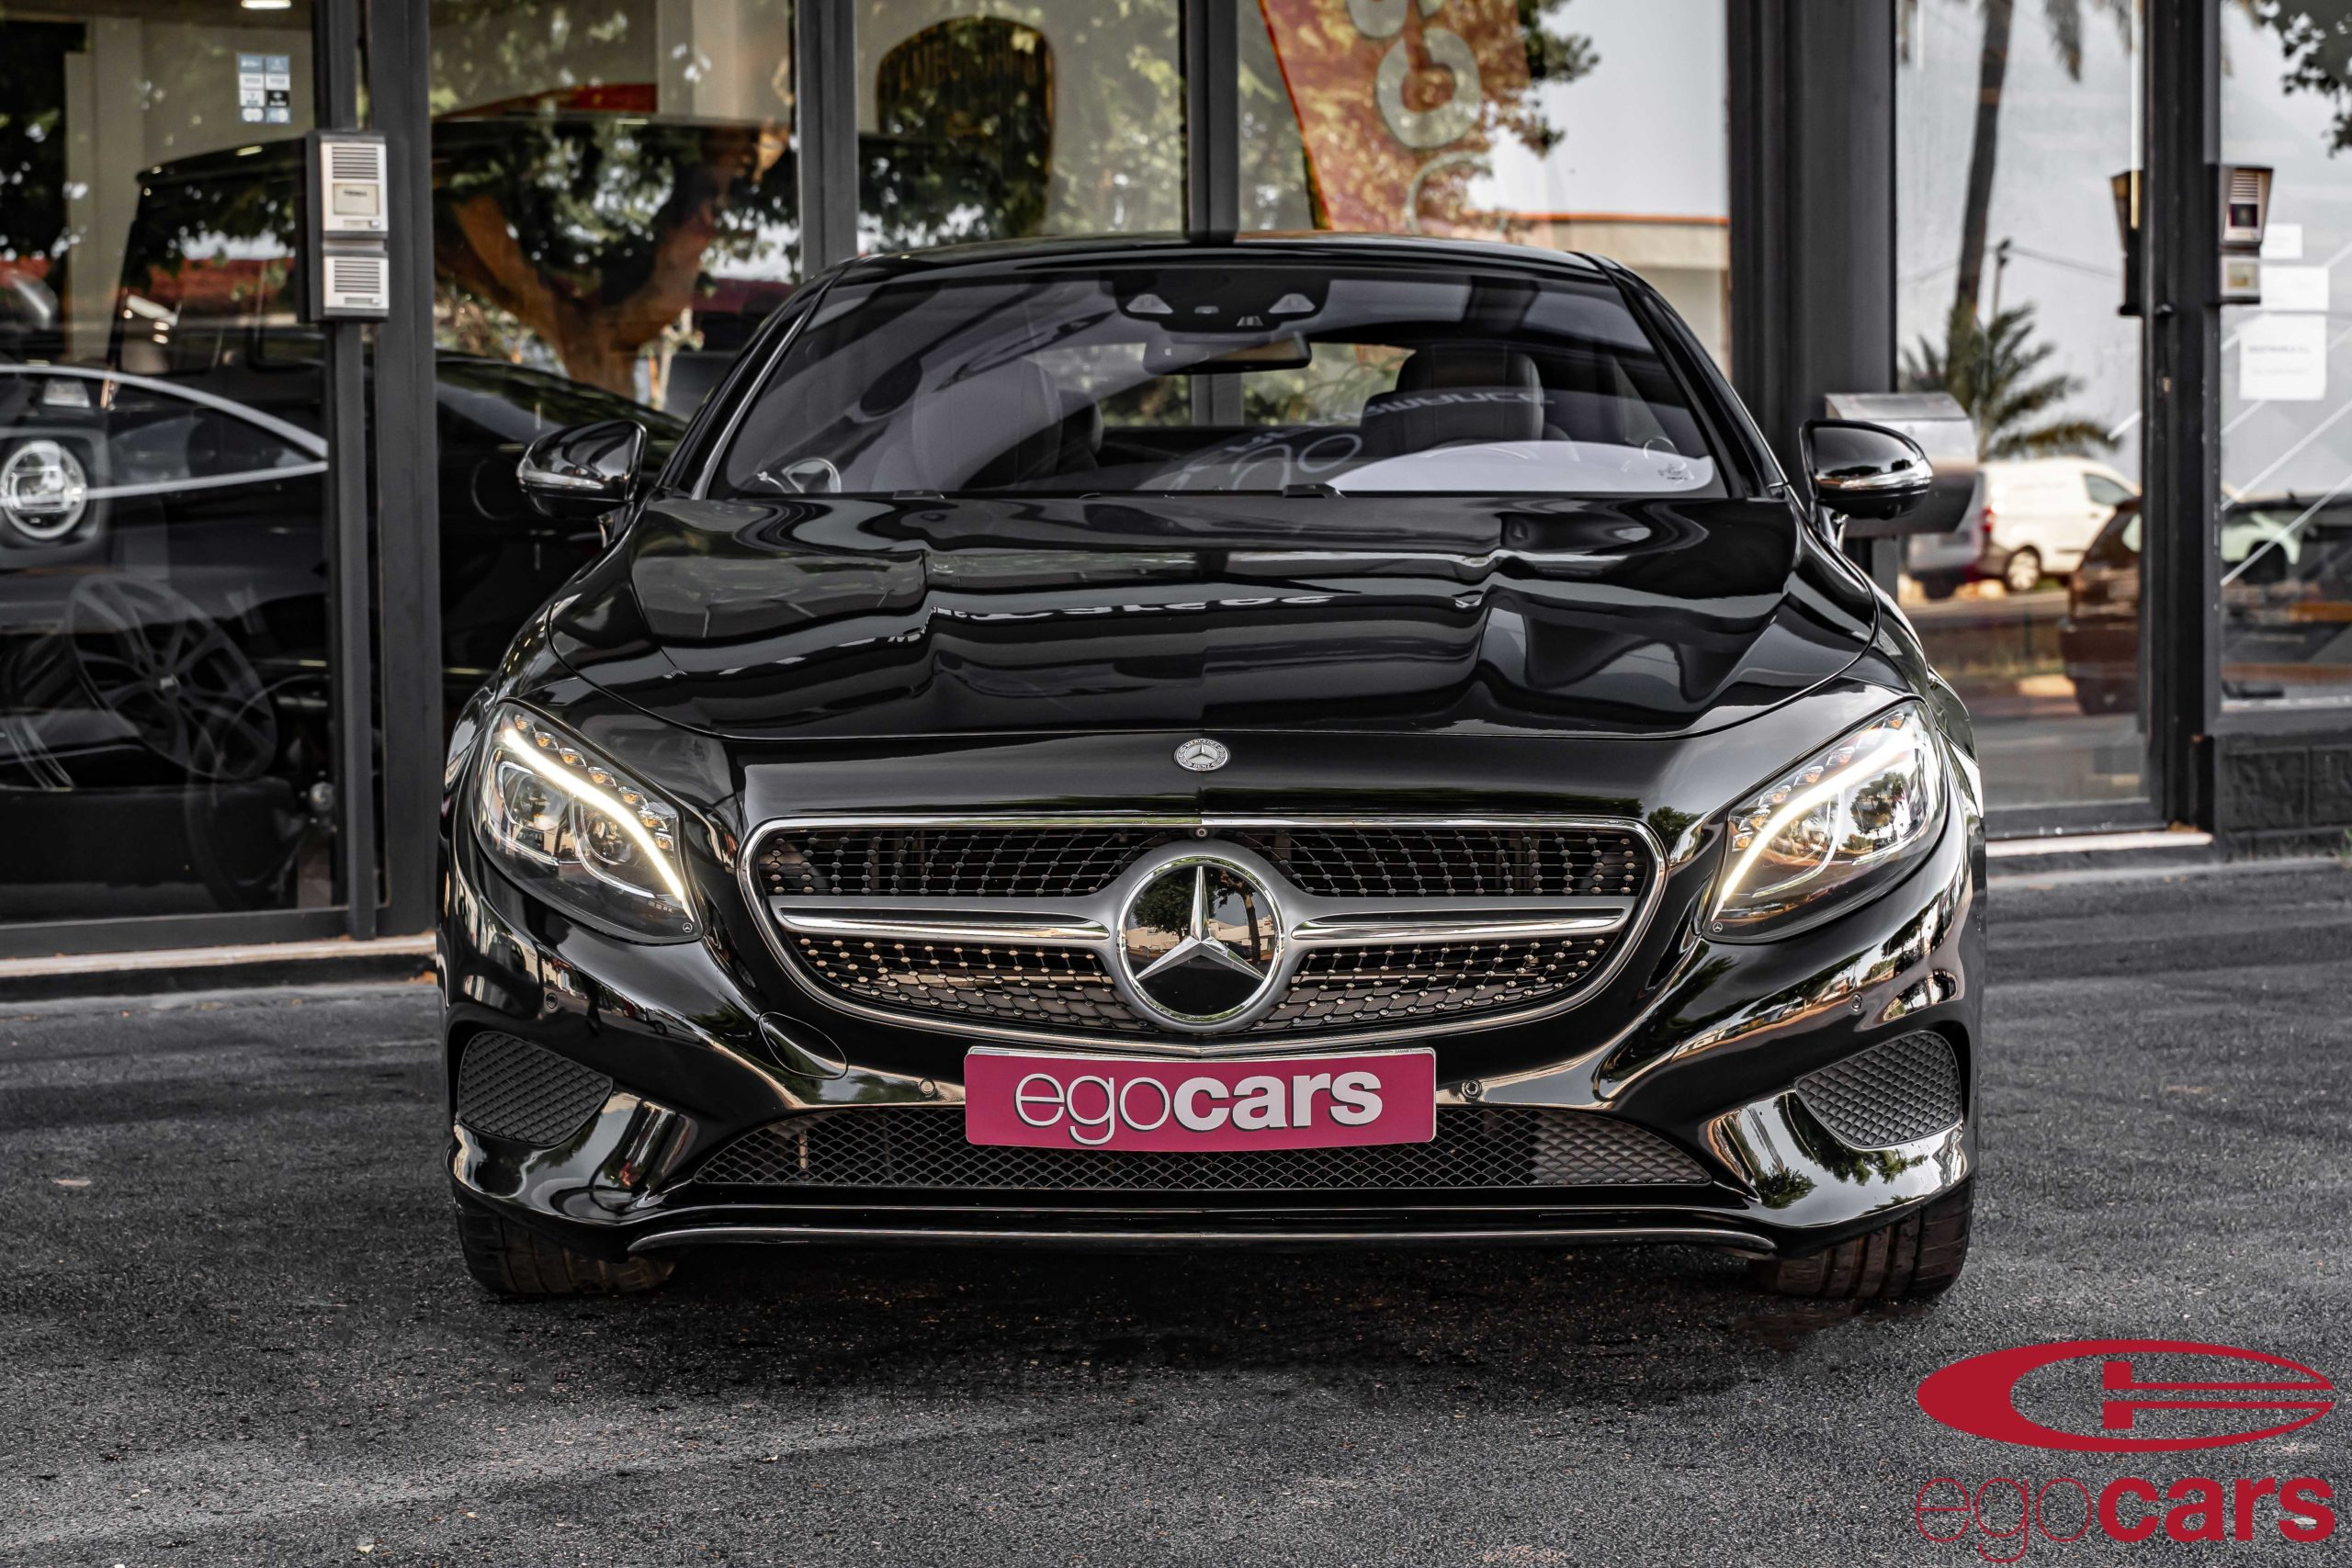 S500 COUPE 4MATIC NEGRO EGOCARS_3